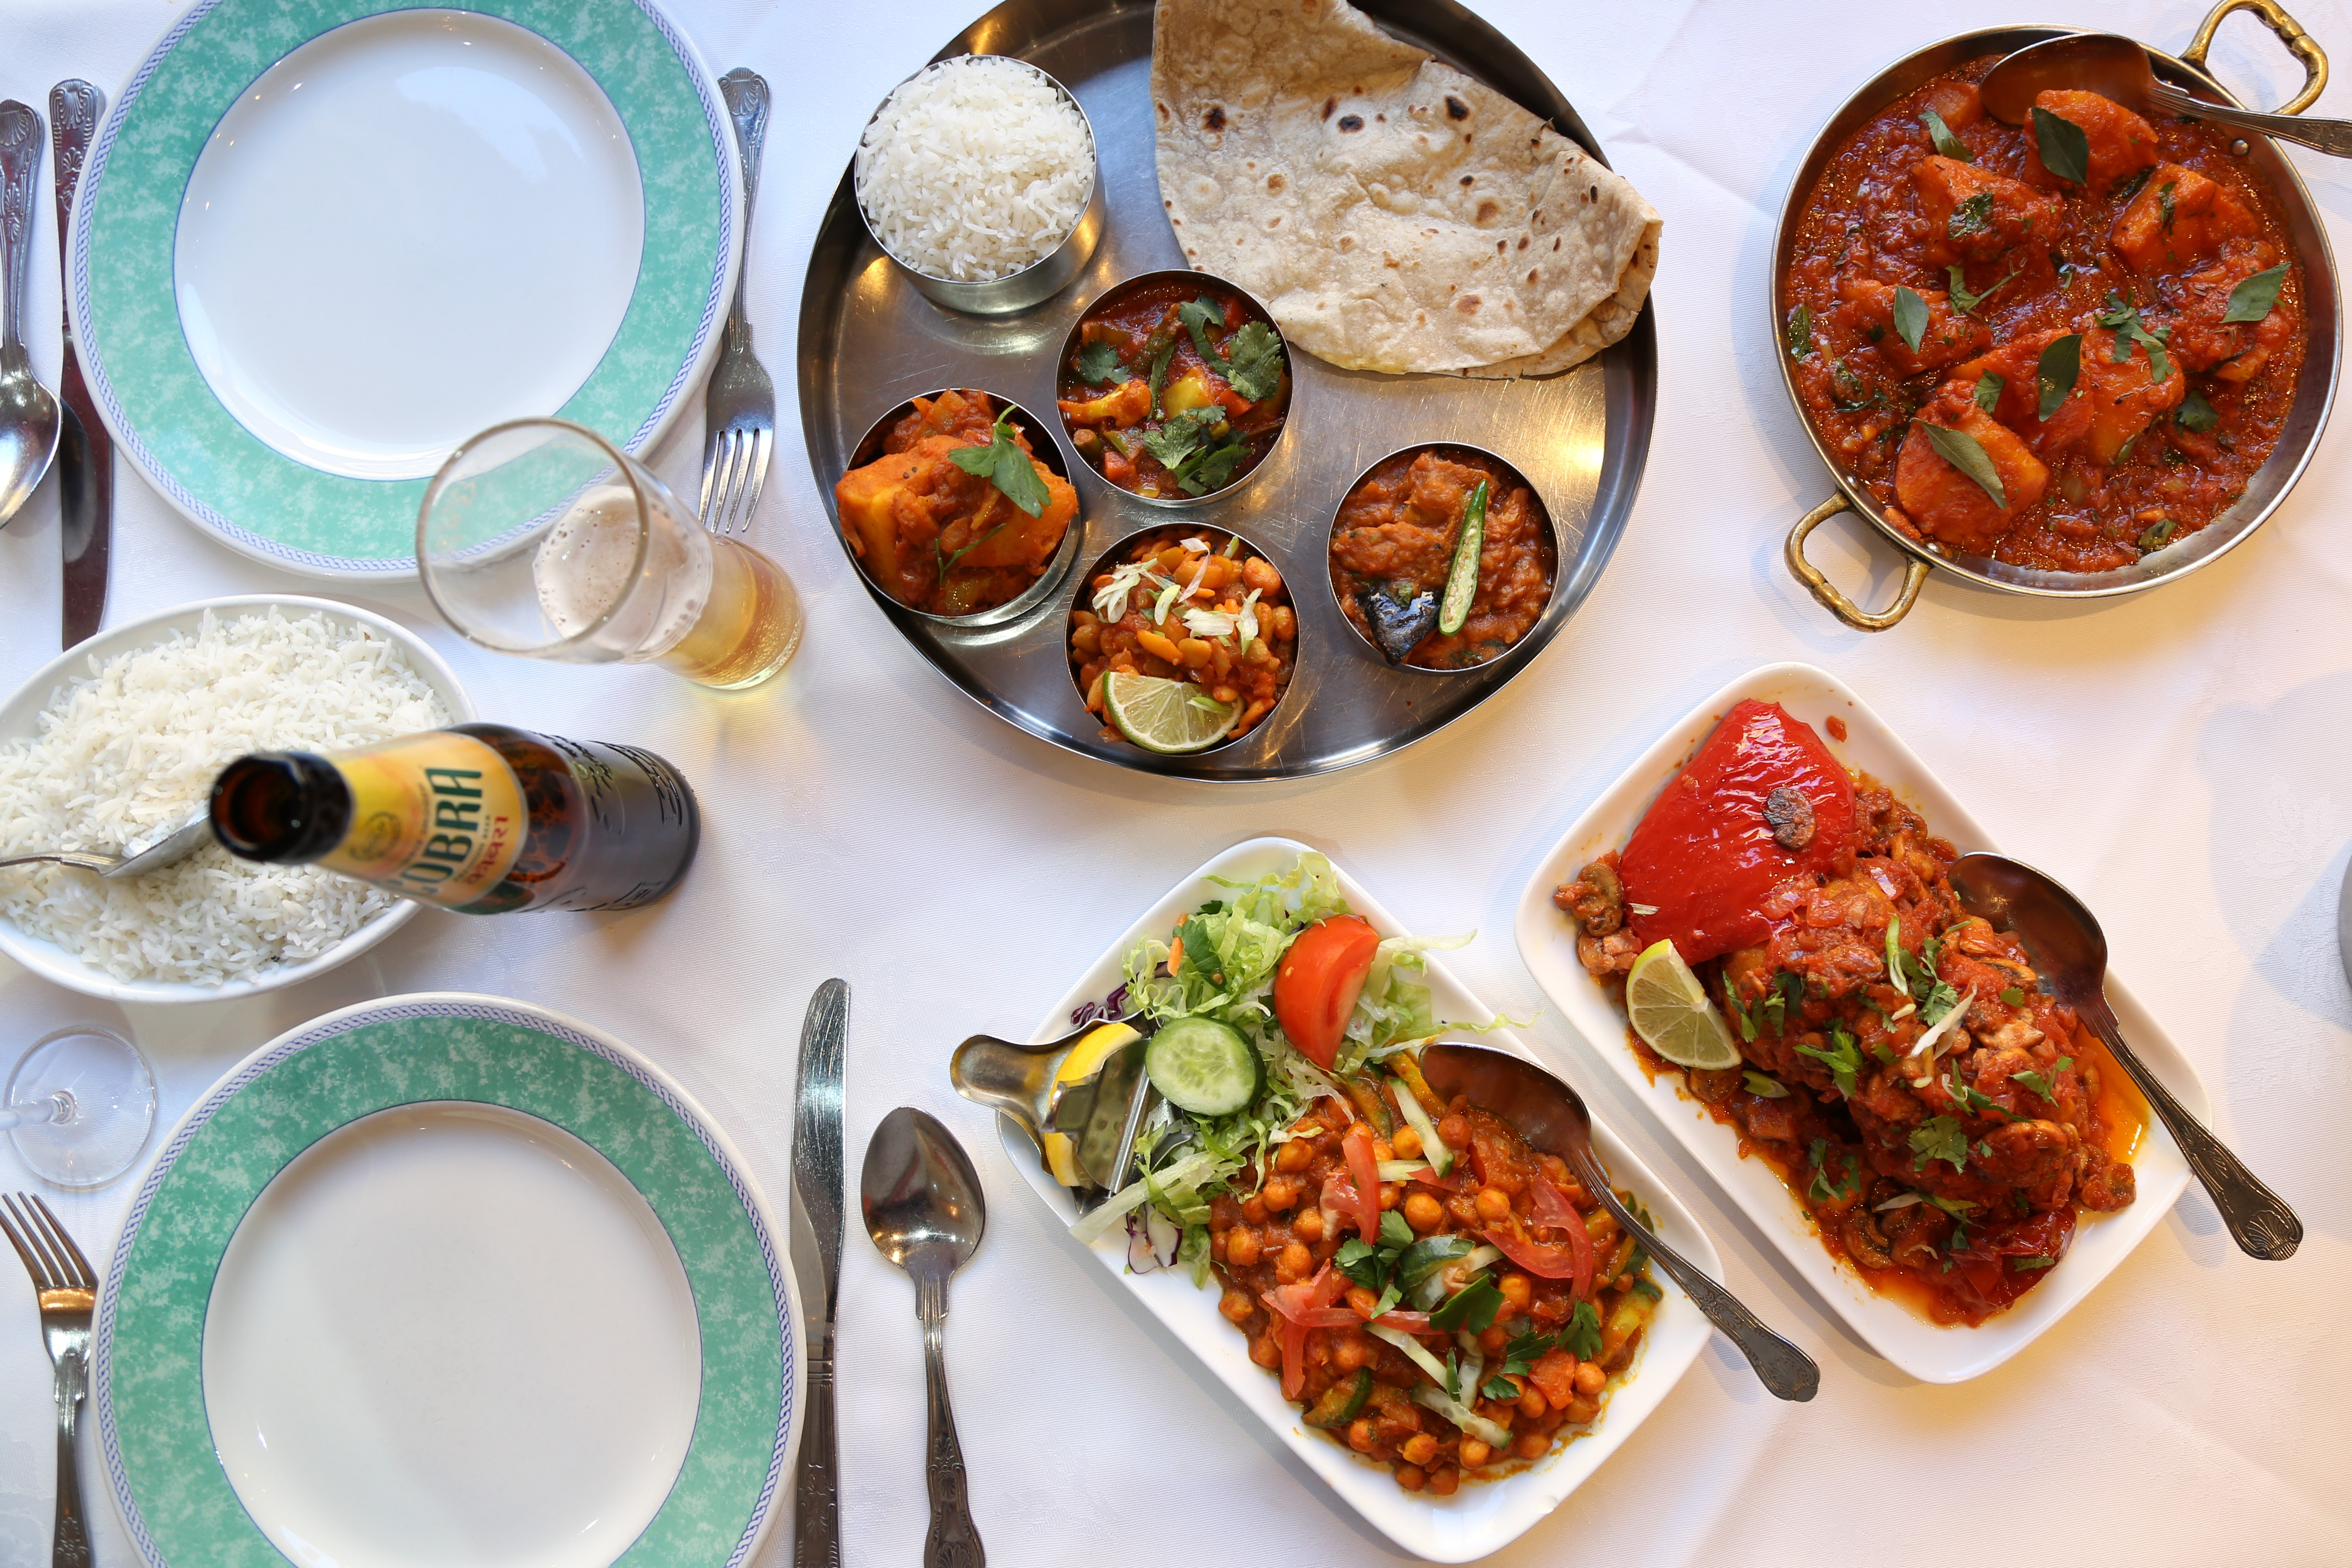 Brick Lane is getting its first ever vegan curry menu